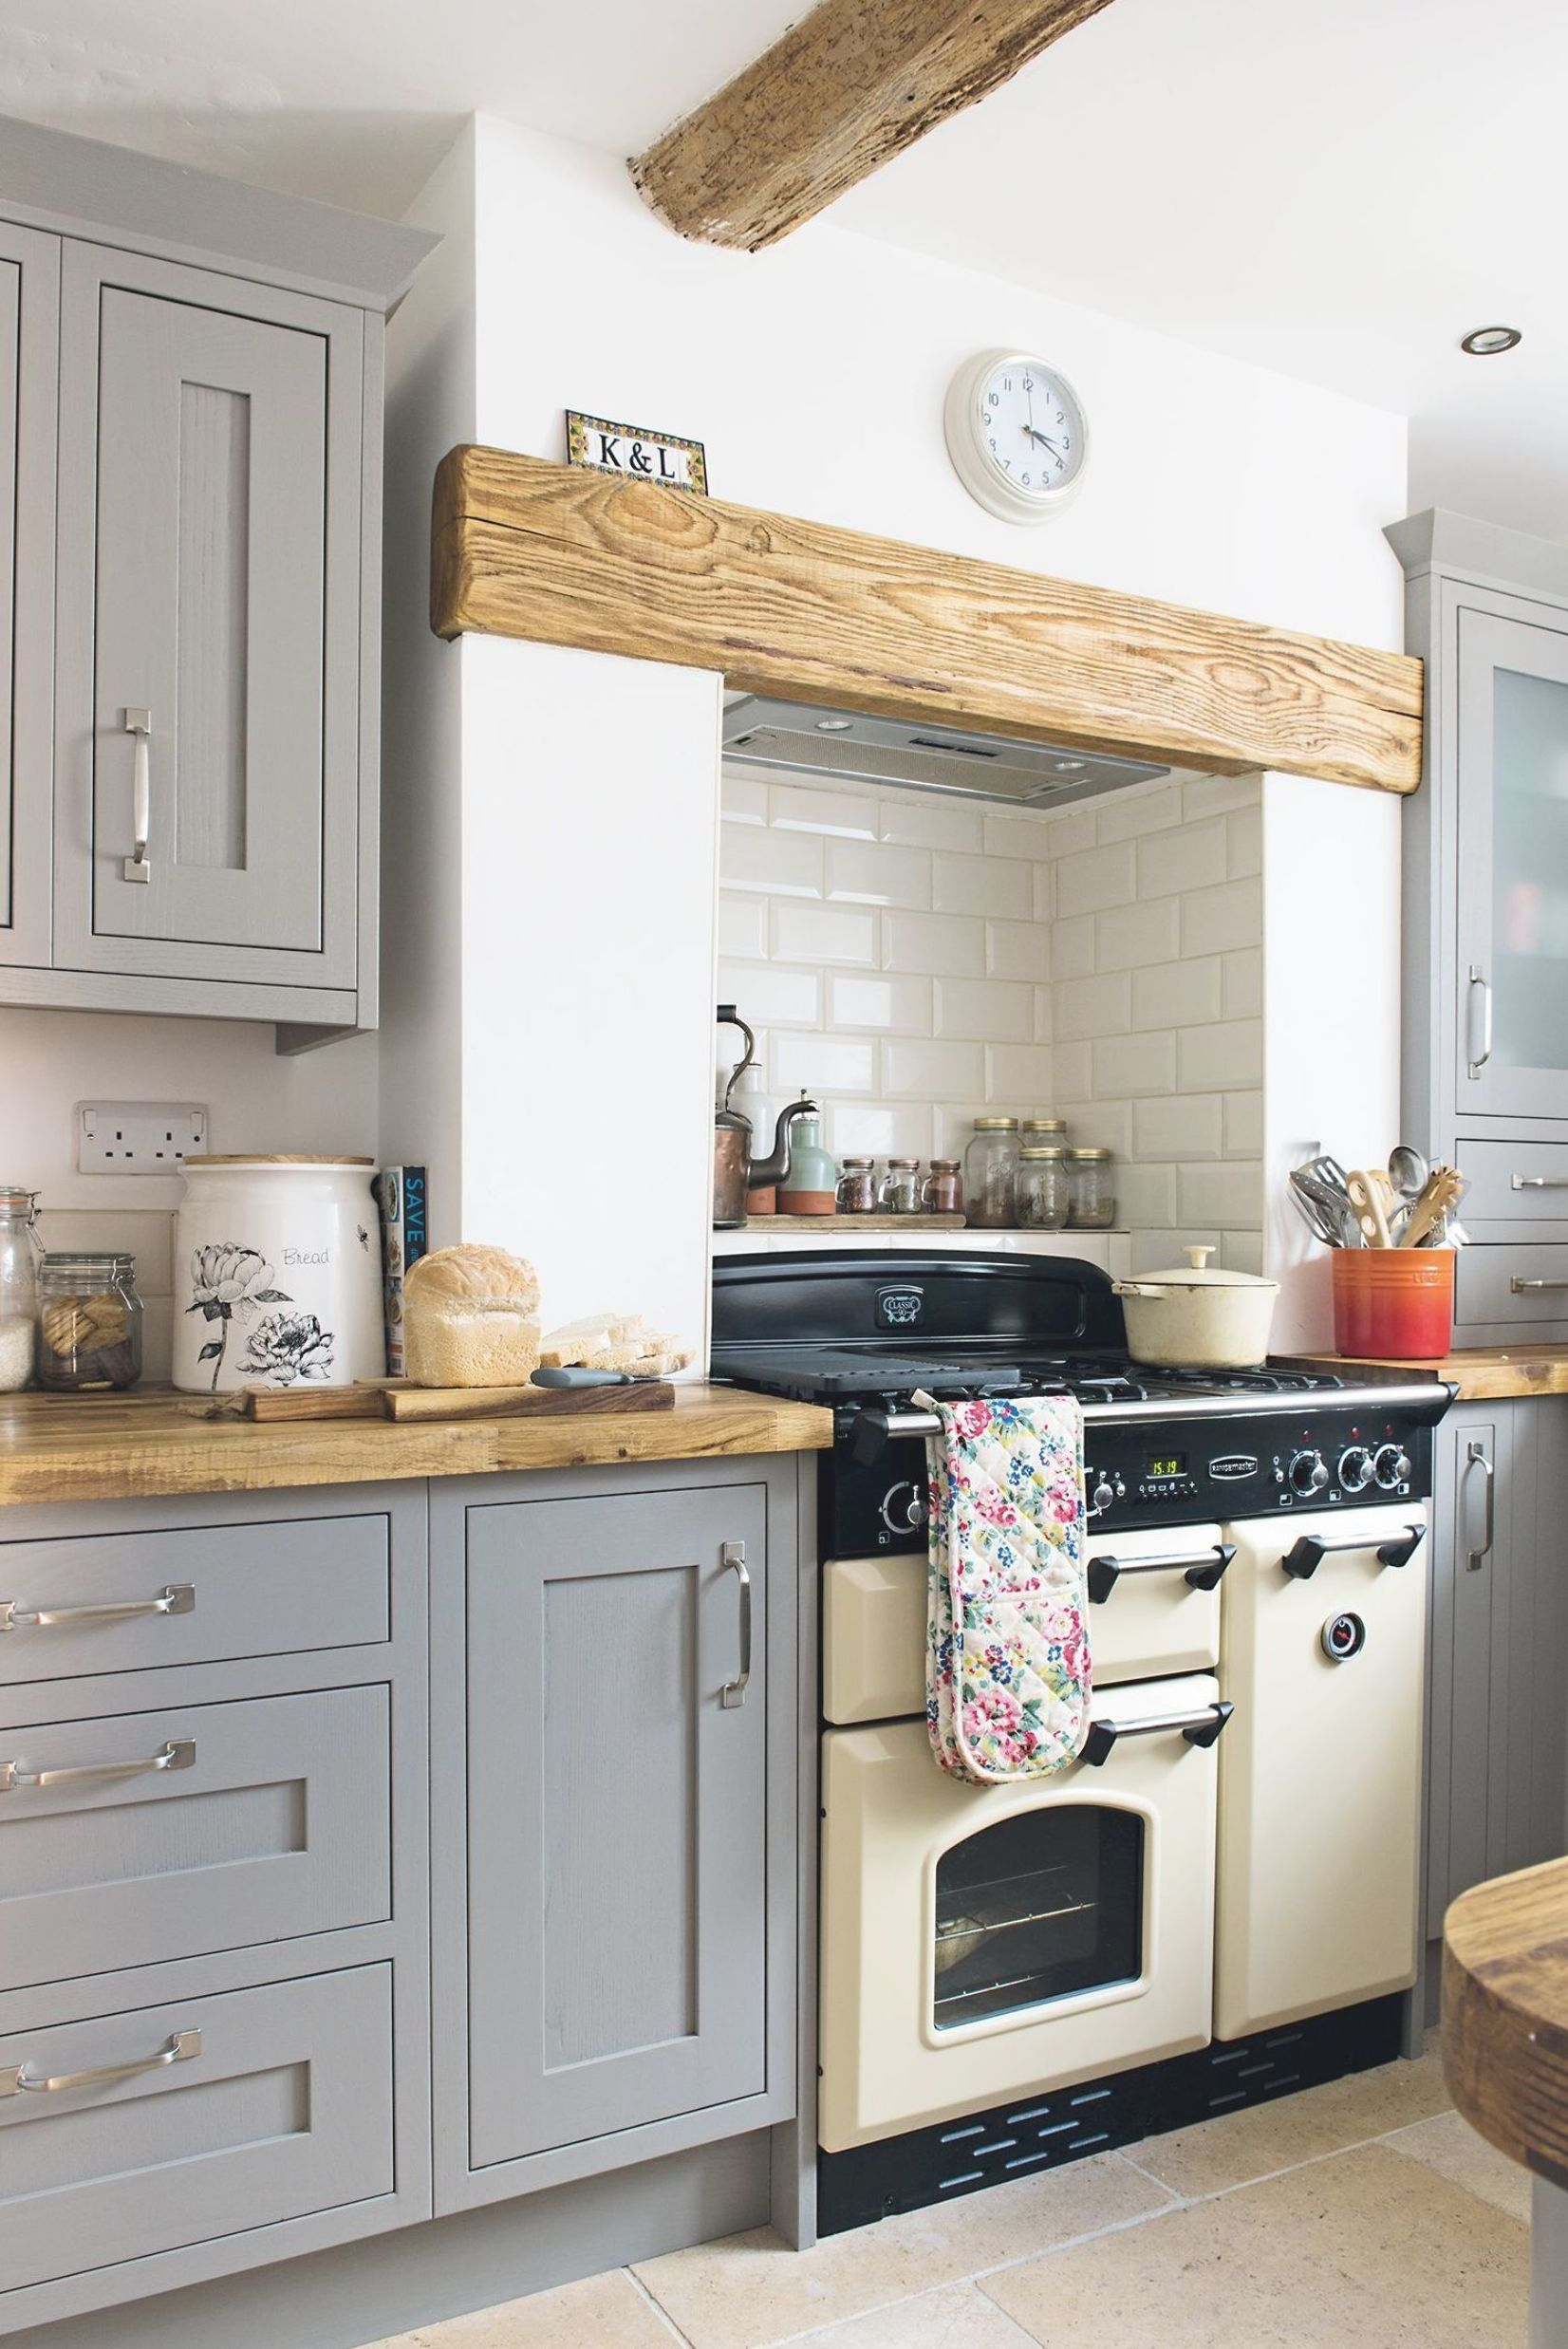 B&Q Cooke & Lewis shaker kitchen in grey in 2020 Country